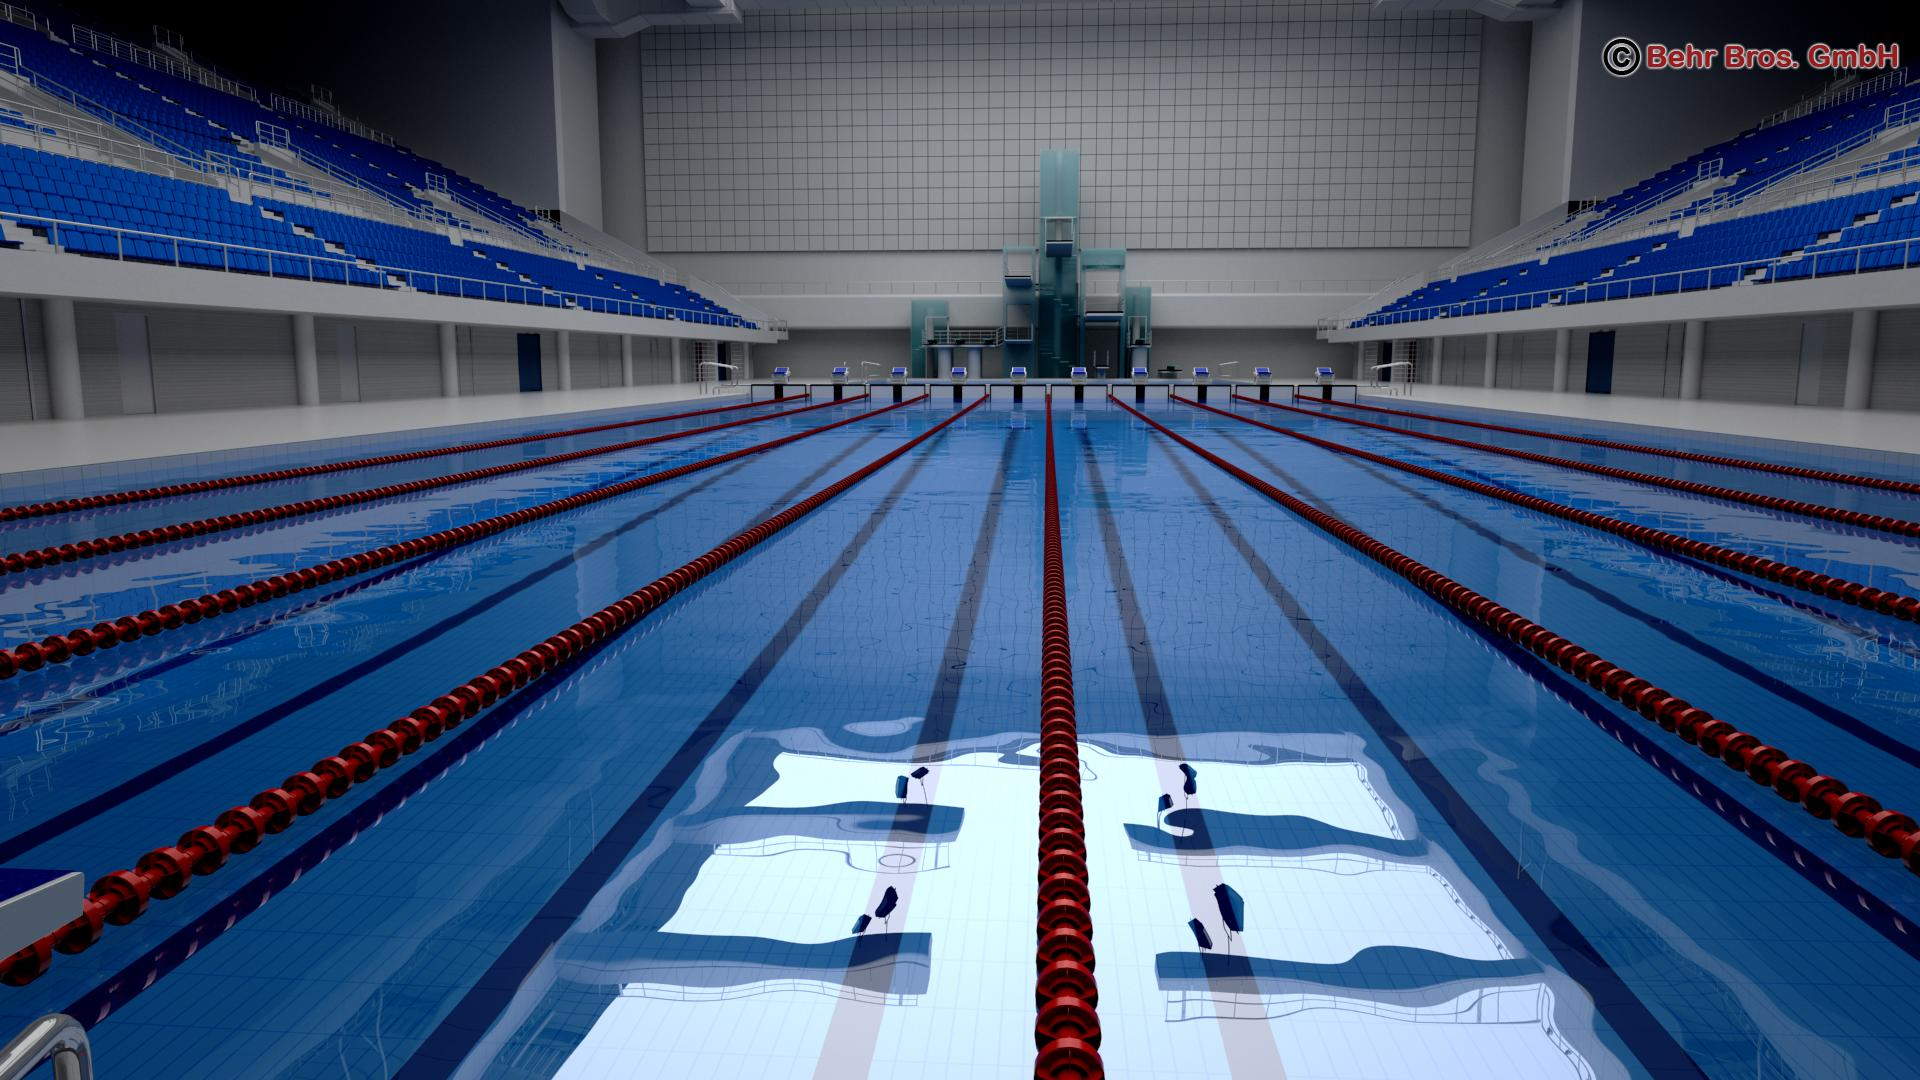 swim stadium 3d model 3ds max fbx c4d lwo ma mb obj 204430